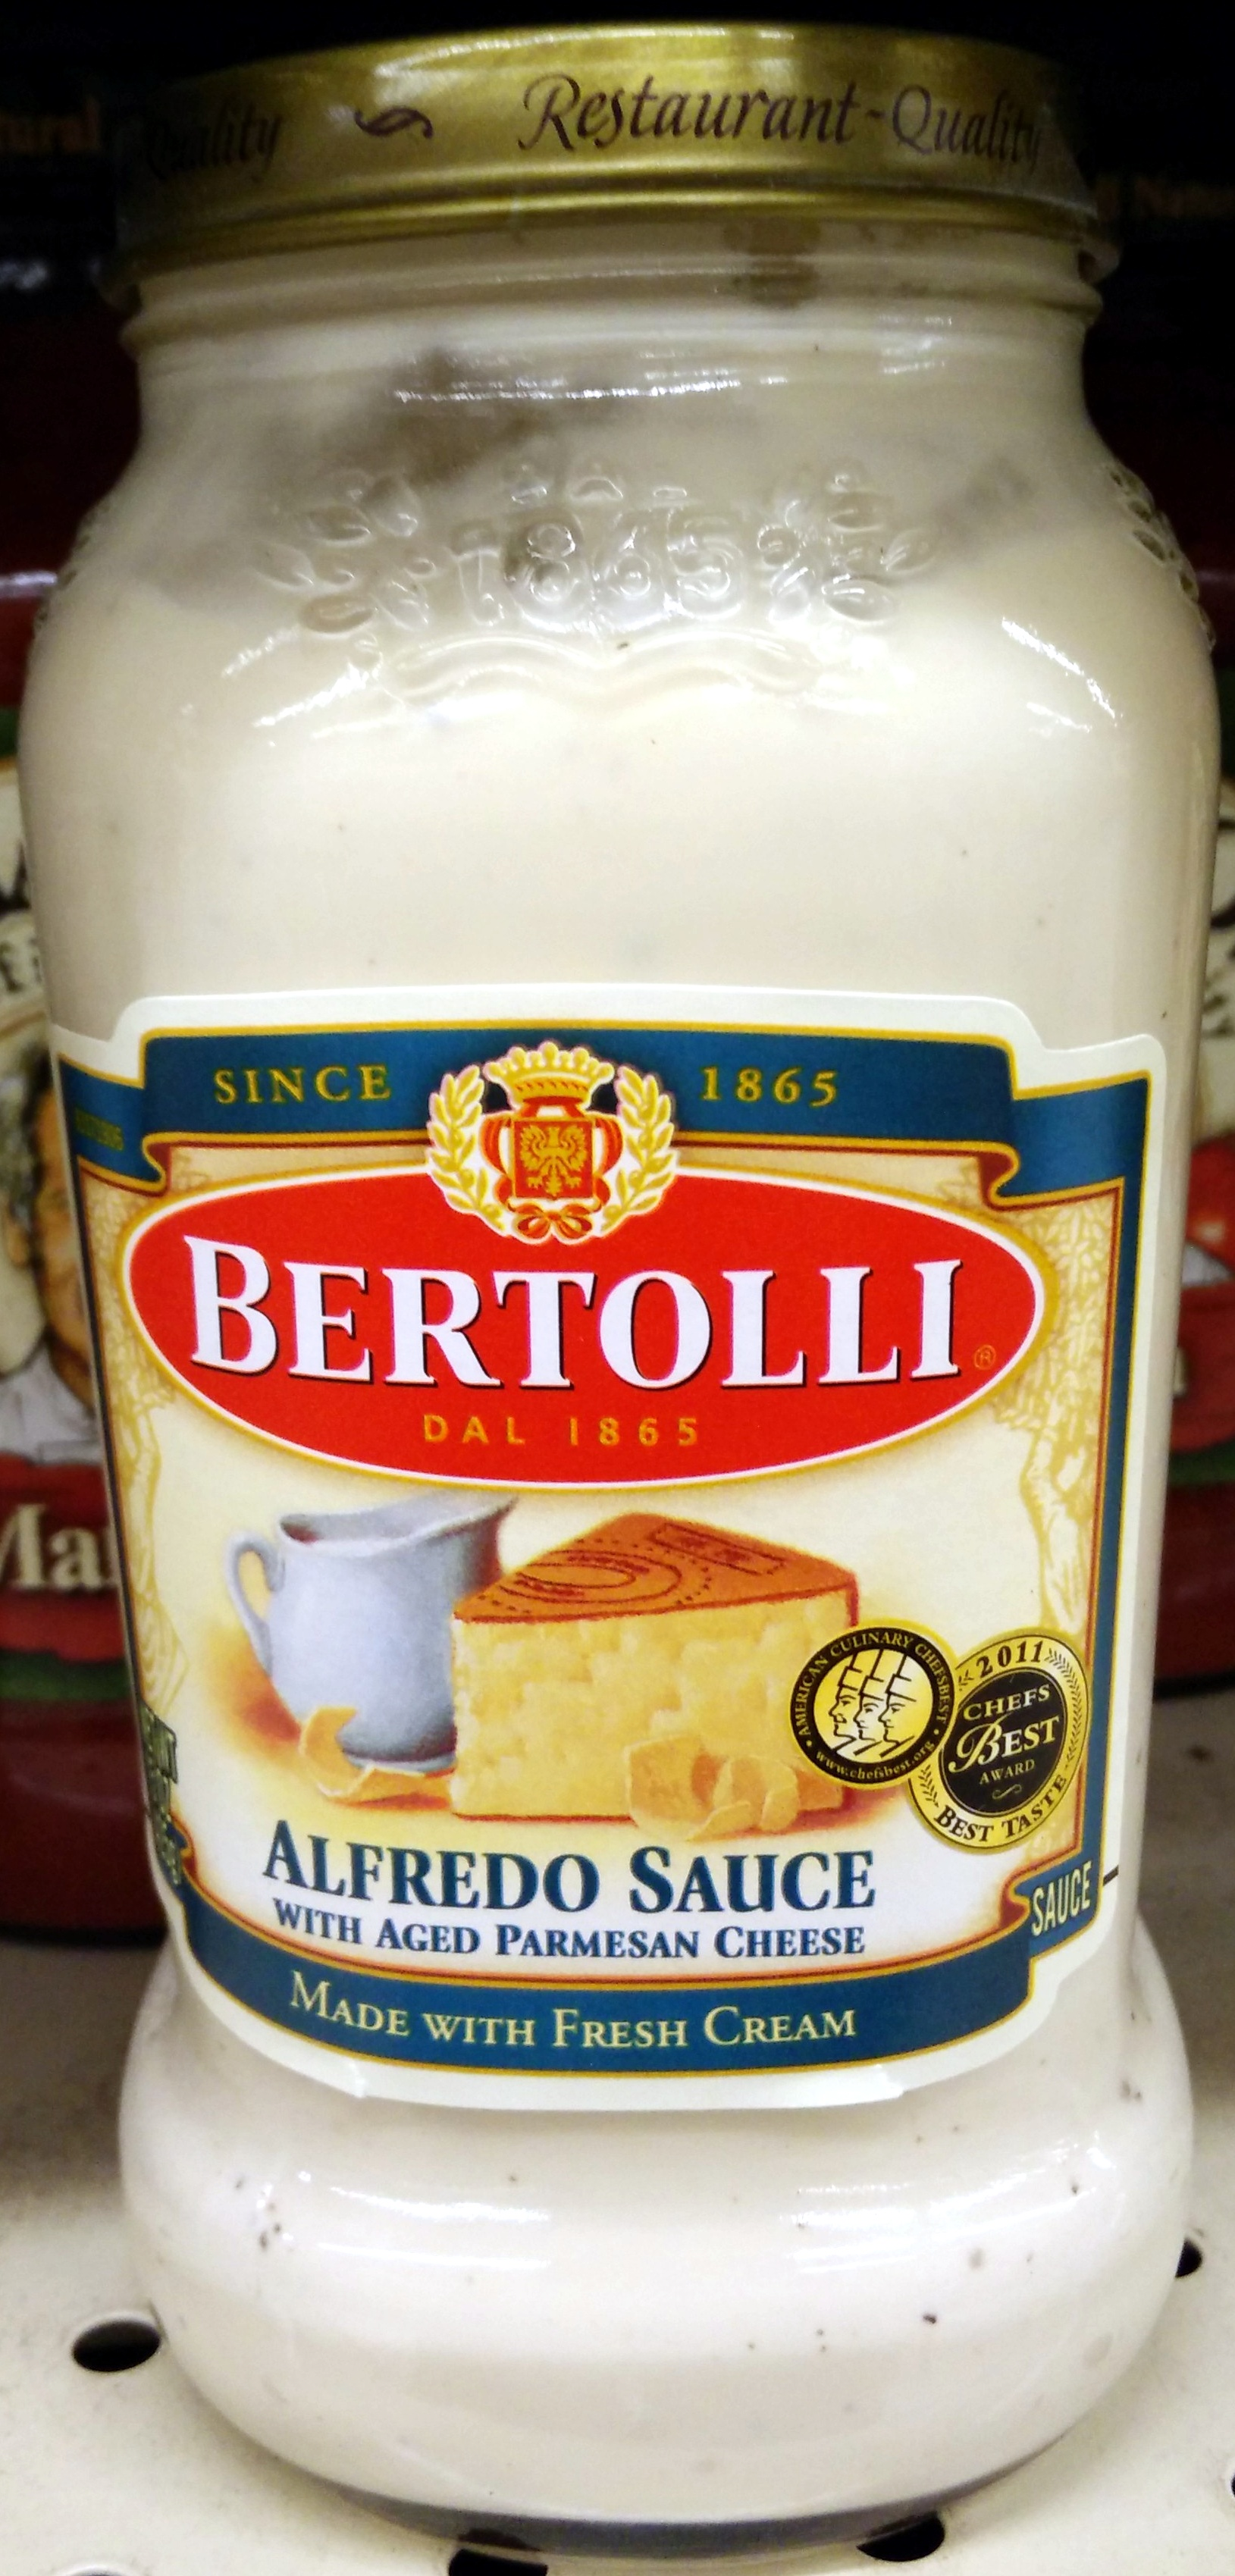 Alfredo sauce with aged parmesan cheese - Product - en